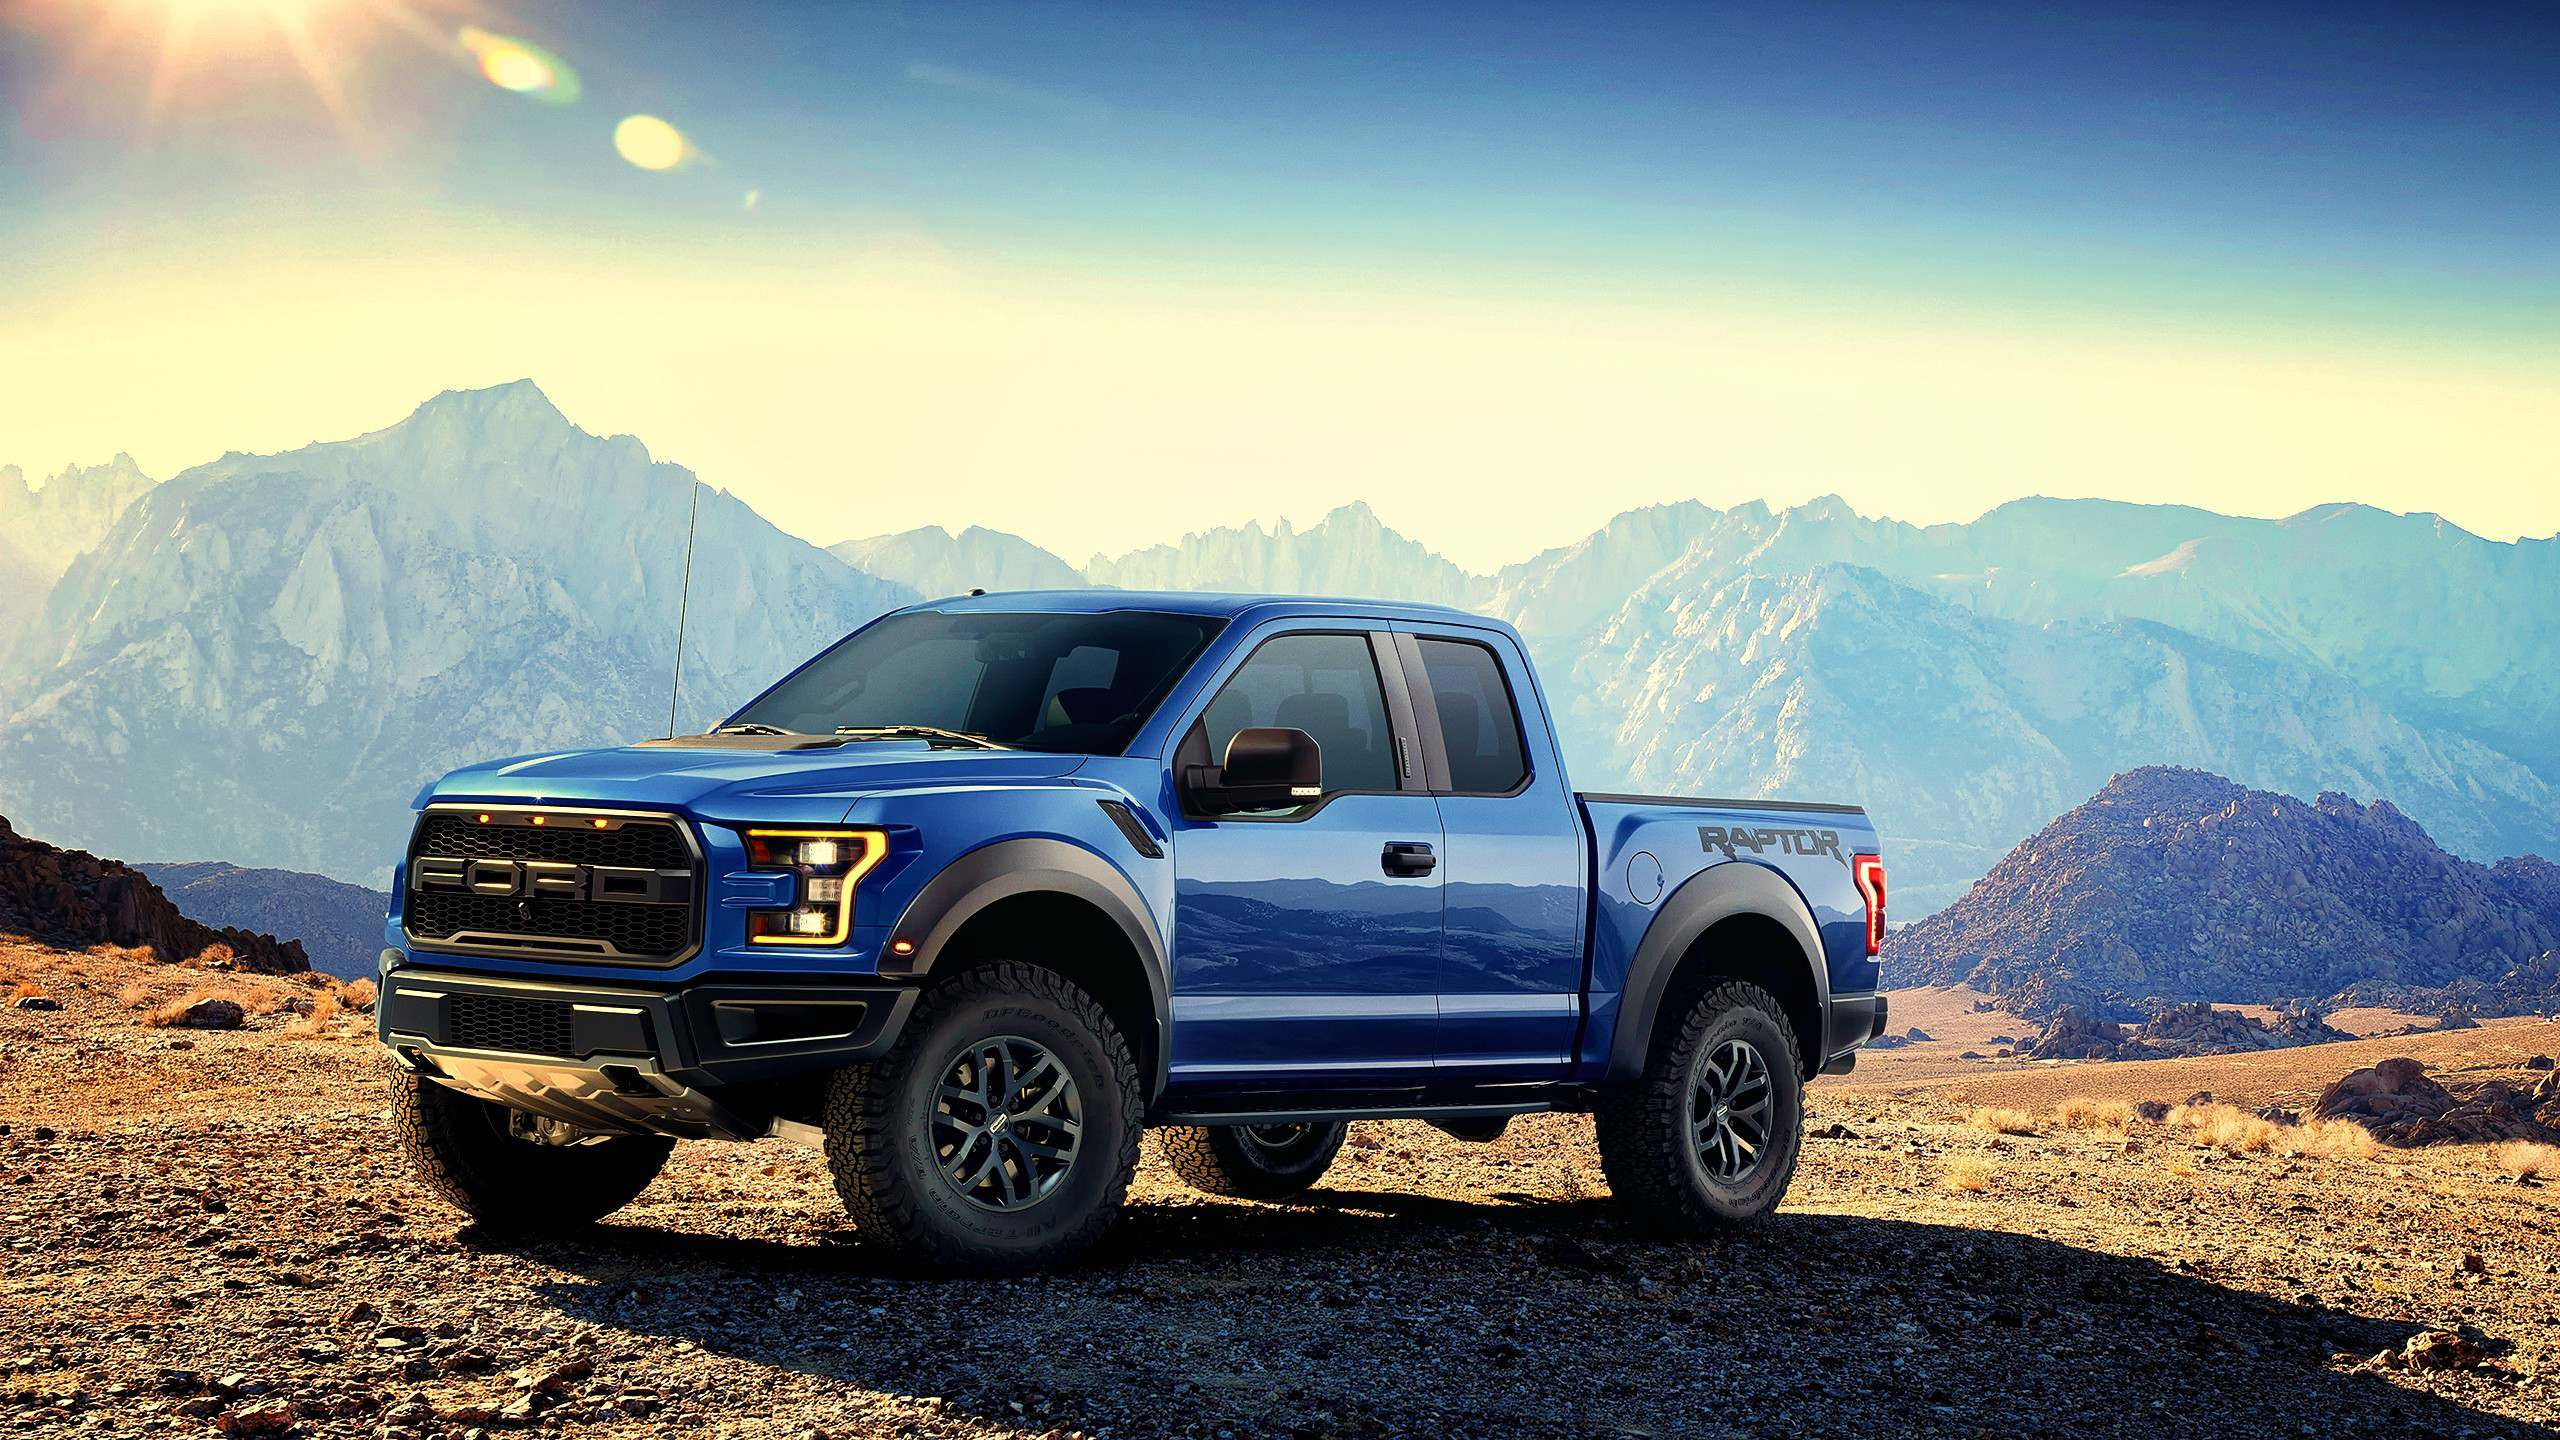 Is Buying a Used Truck Worth It?